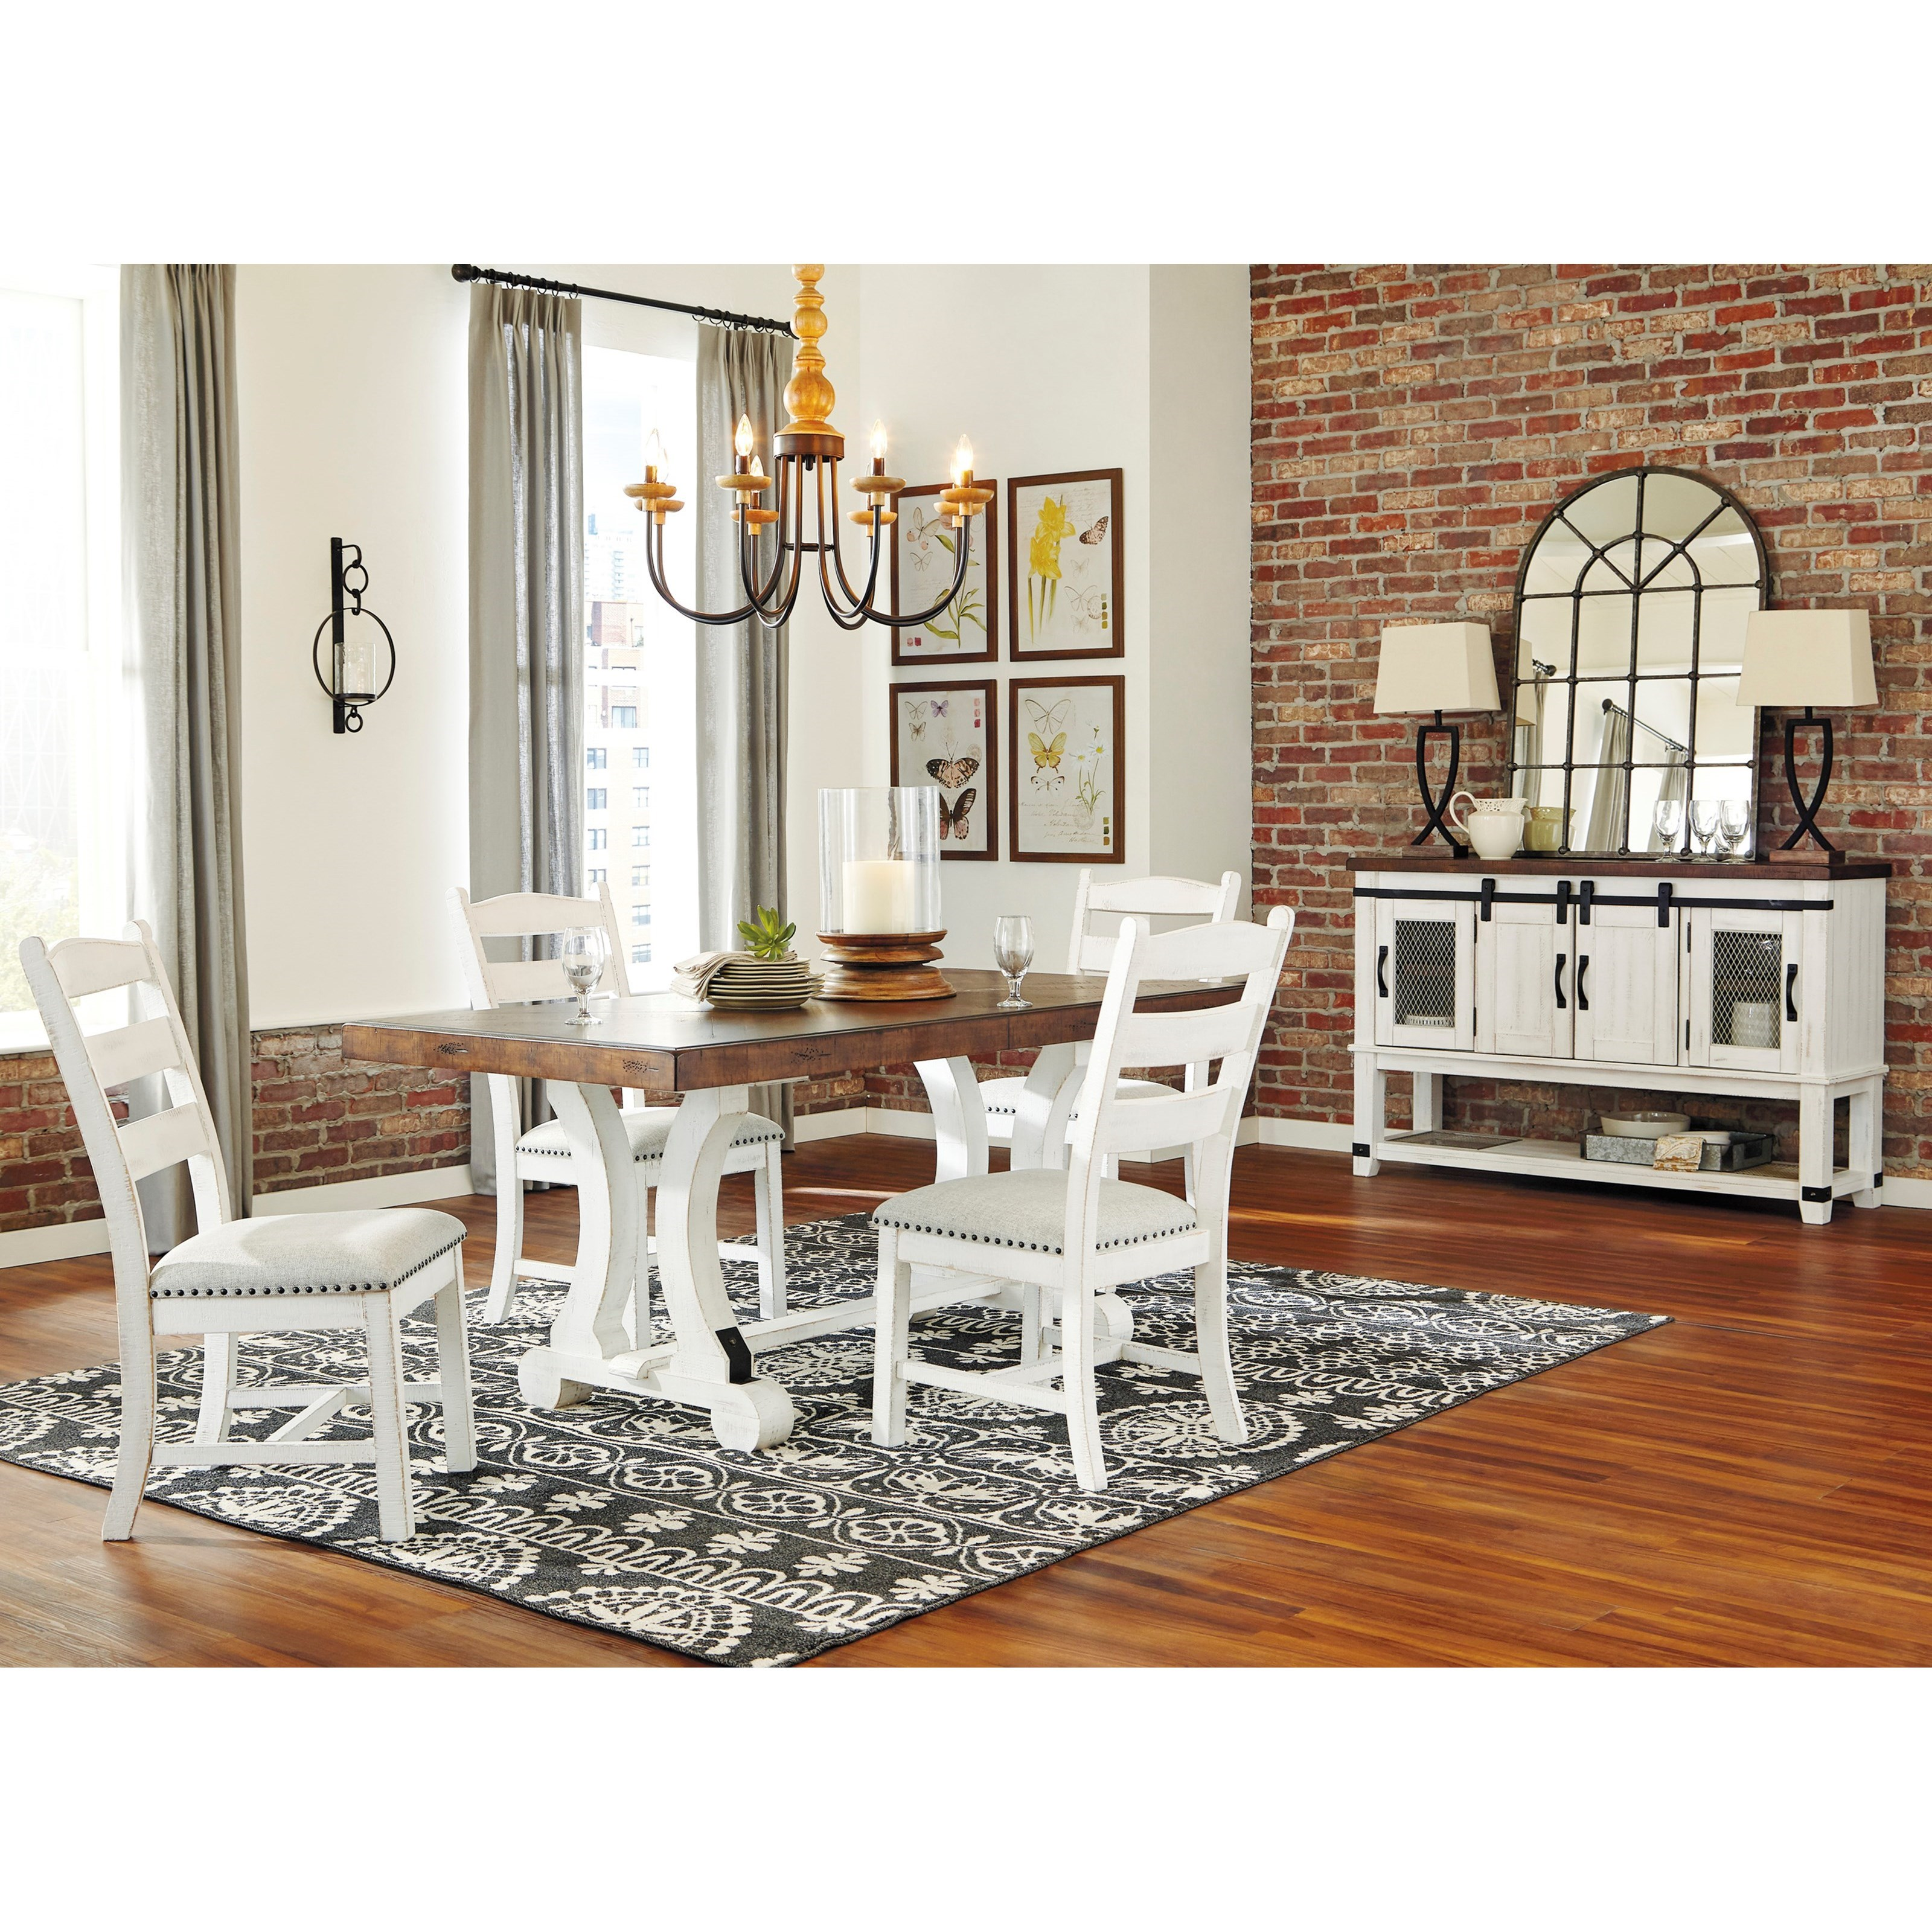 Ashley (Signature Design) Valebeck Casual Dining Room